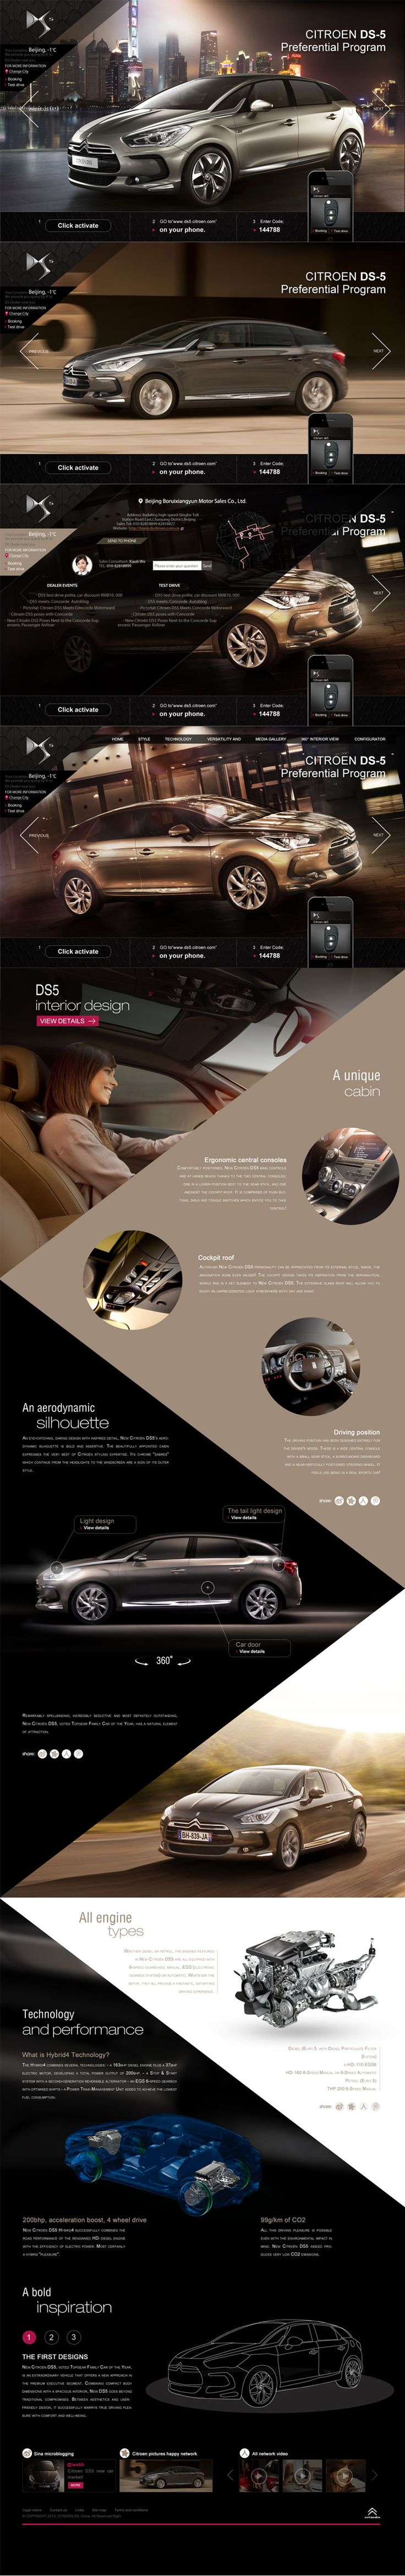 Citroen DS5| #webdesign #it #web #design #layout #userinterface #website #webdesign <<< repinned by an #advertising #agency from #Hamburg / #Germany - www.BlickeDeeler.de